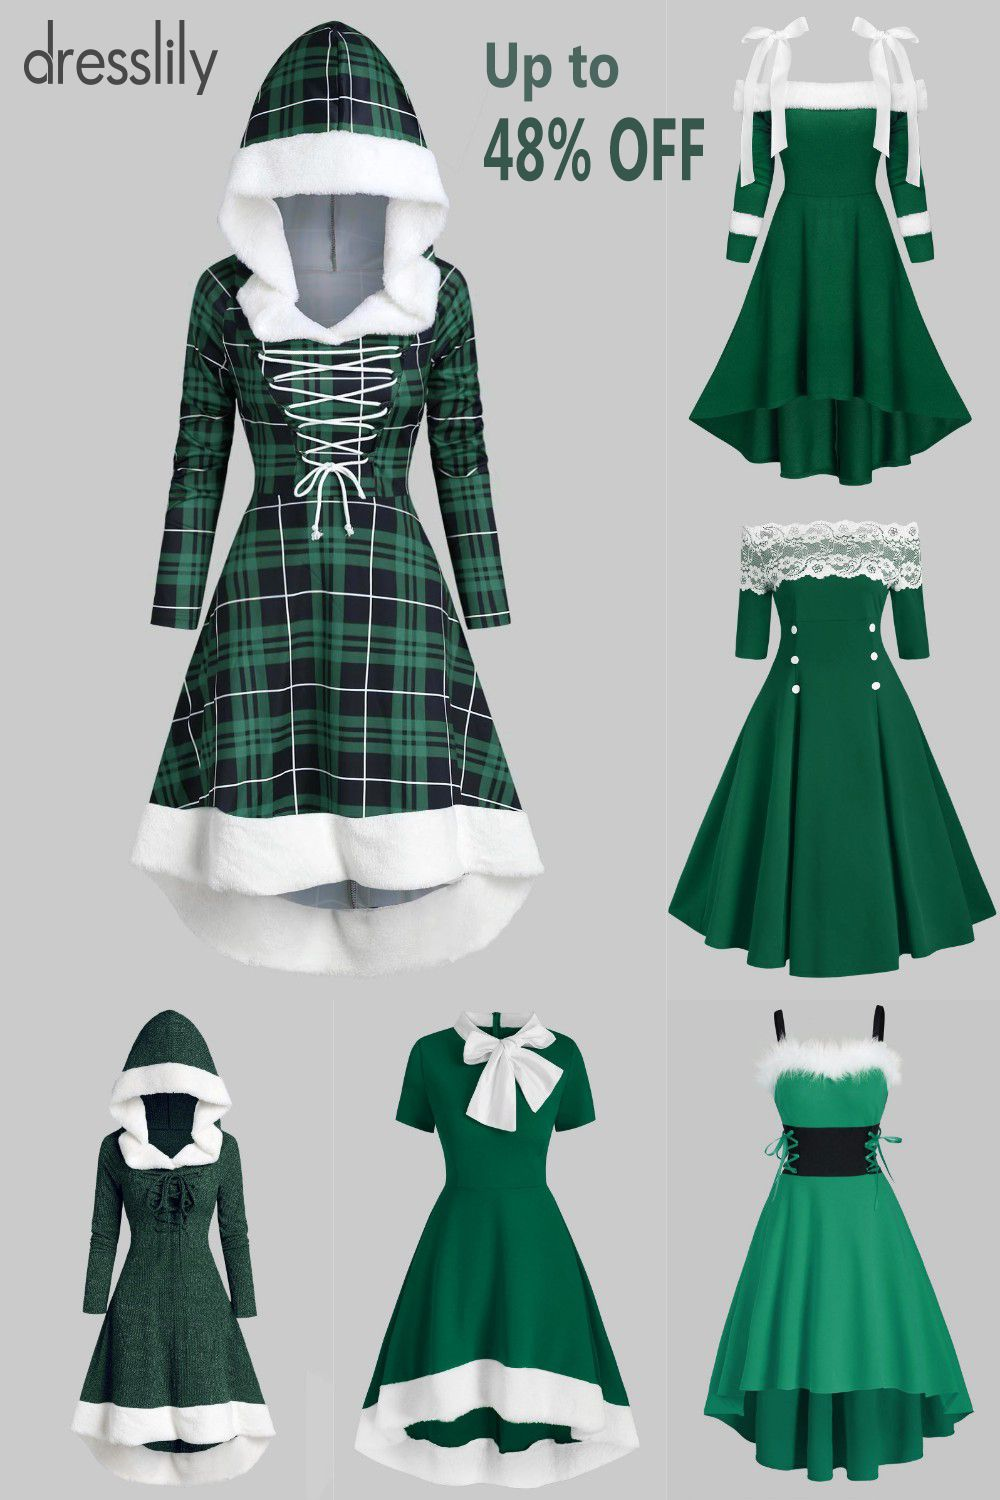 Womens fashion outfits | Christmas party outfit | Womens sweater | Vintage dresses | dresslily